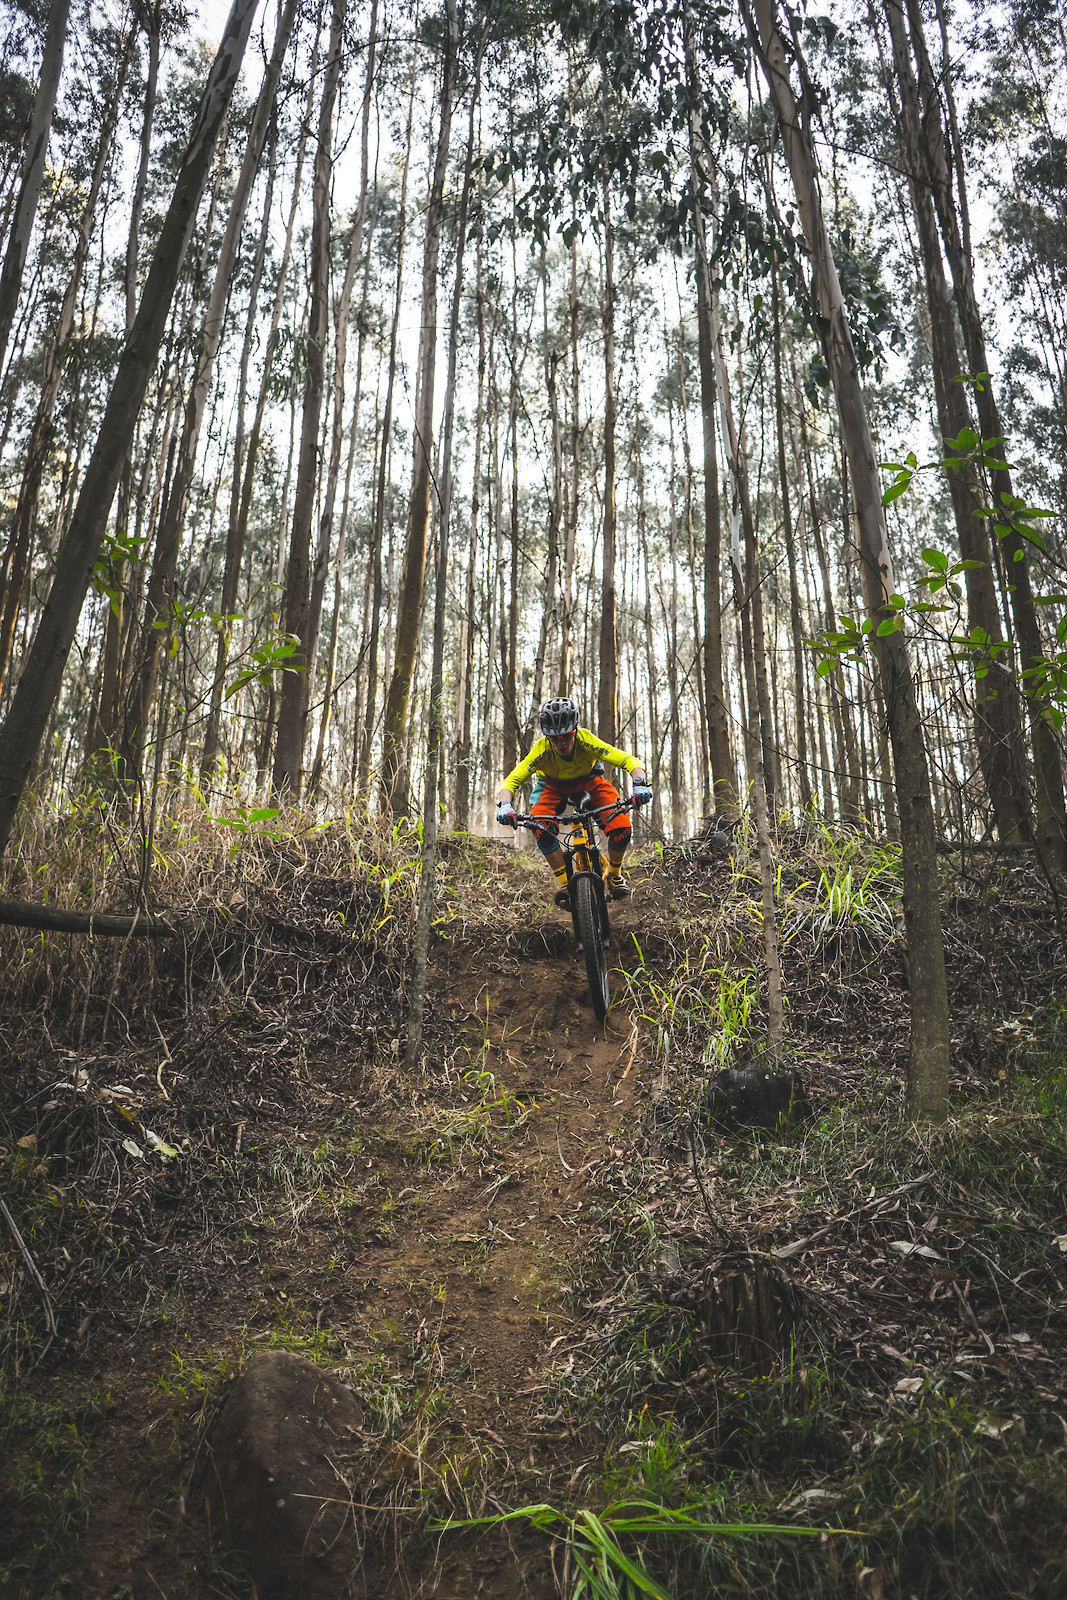 Bombing - Its.Peteee - Mountain Biking Pictures - Vital MTB